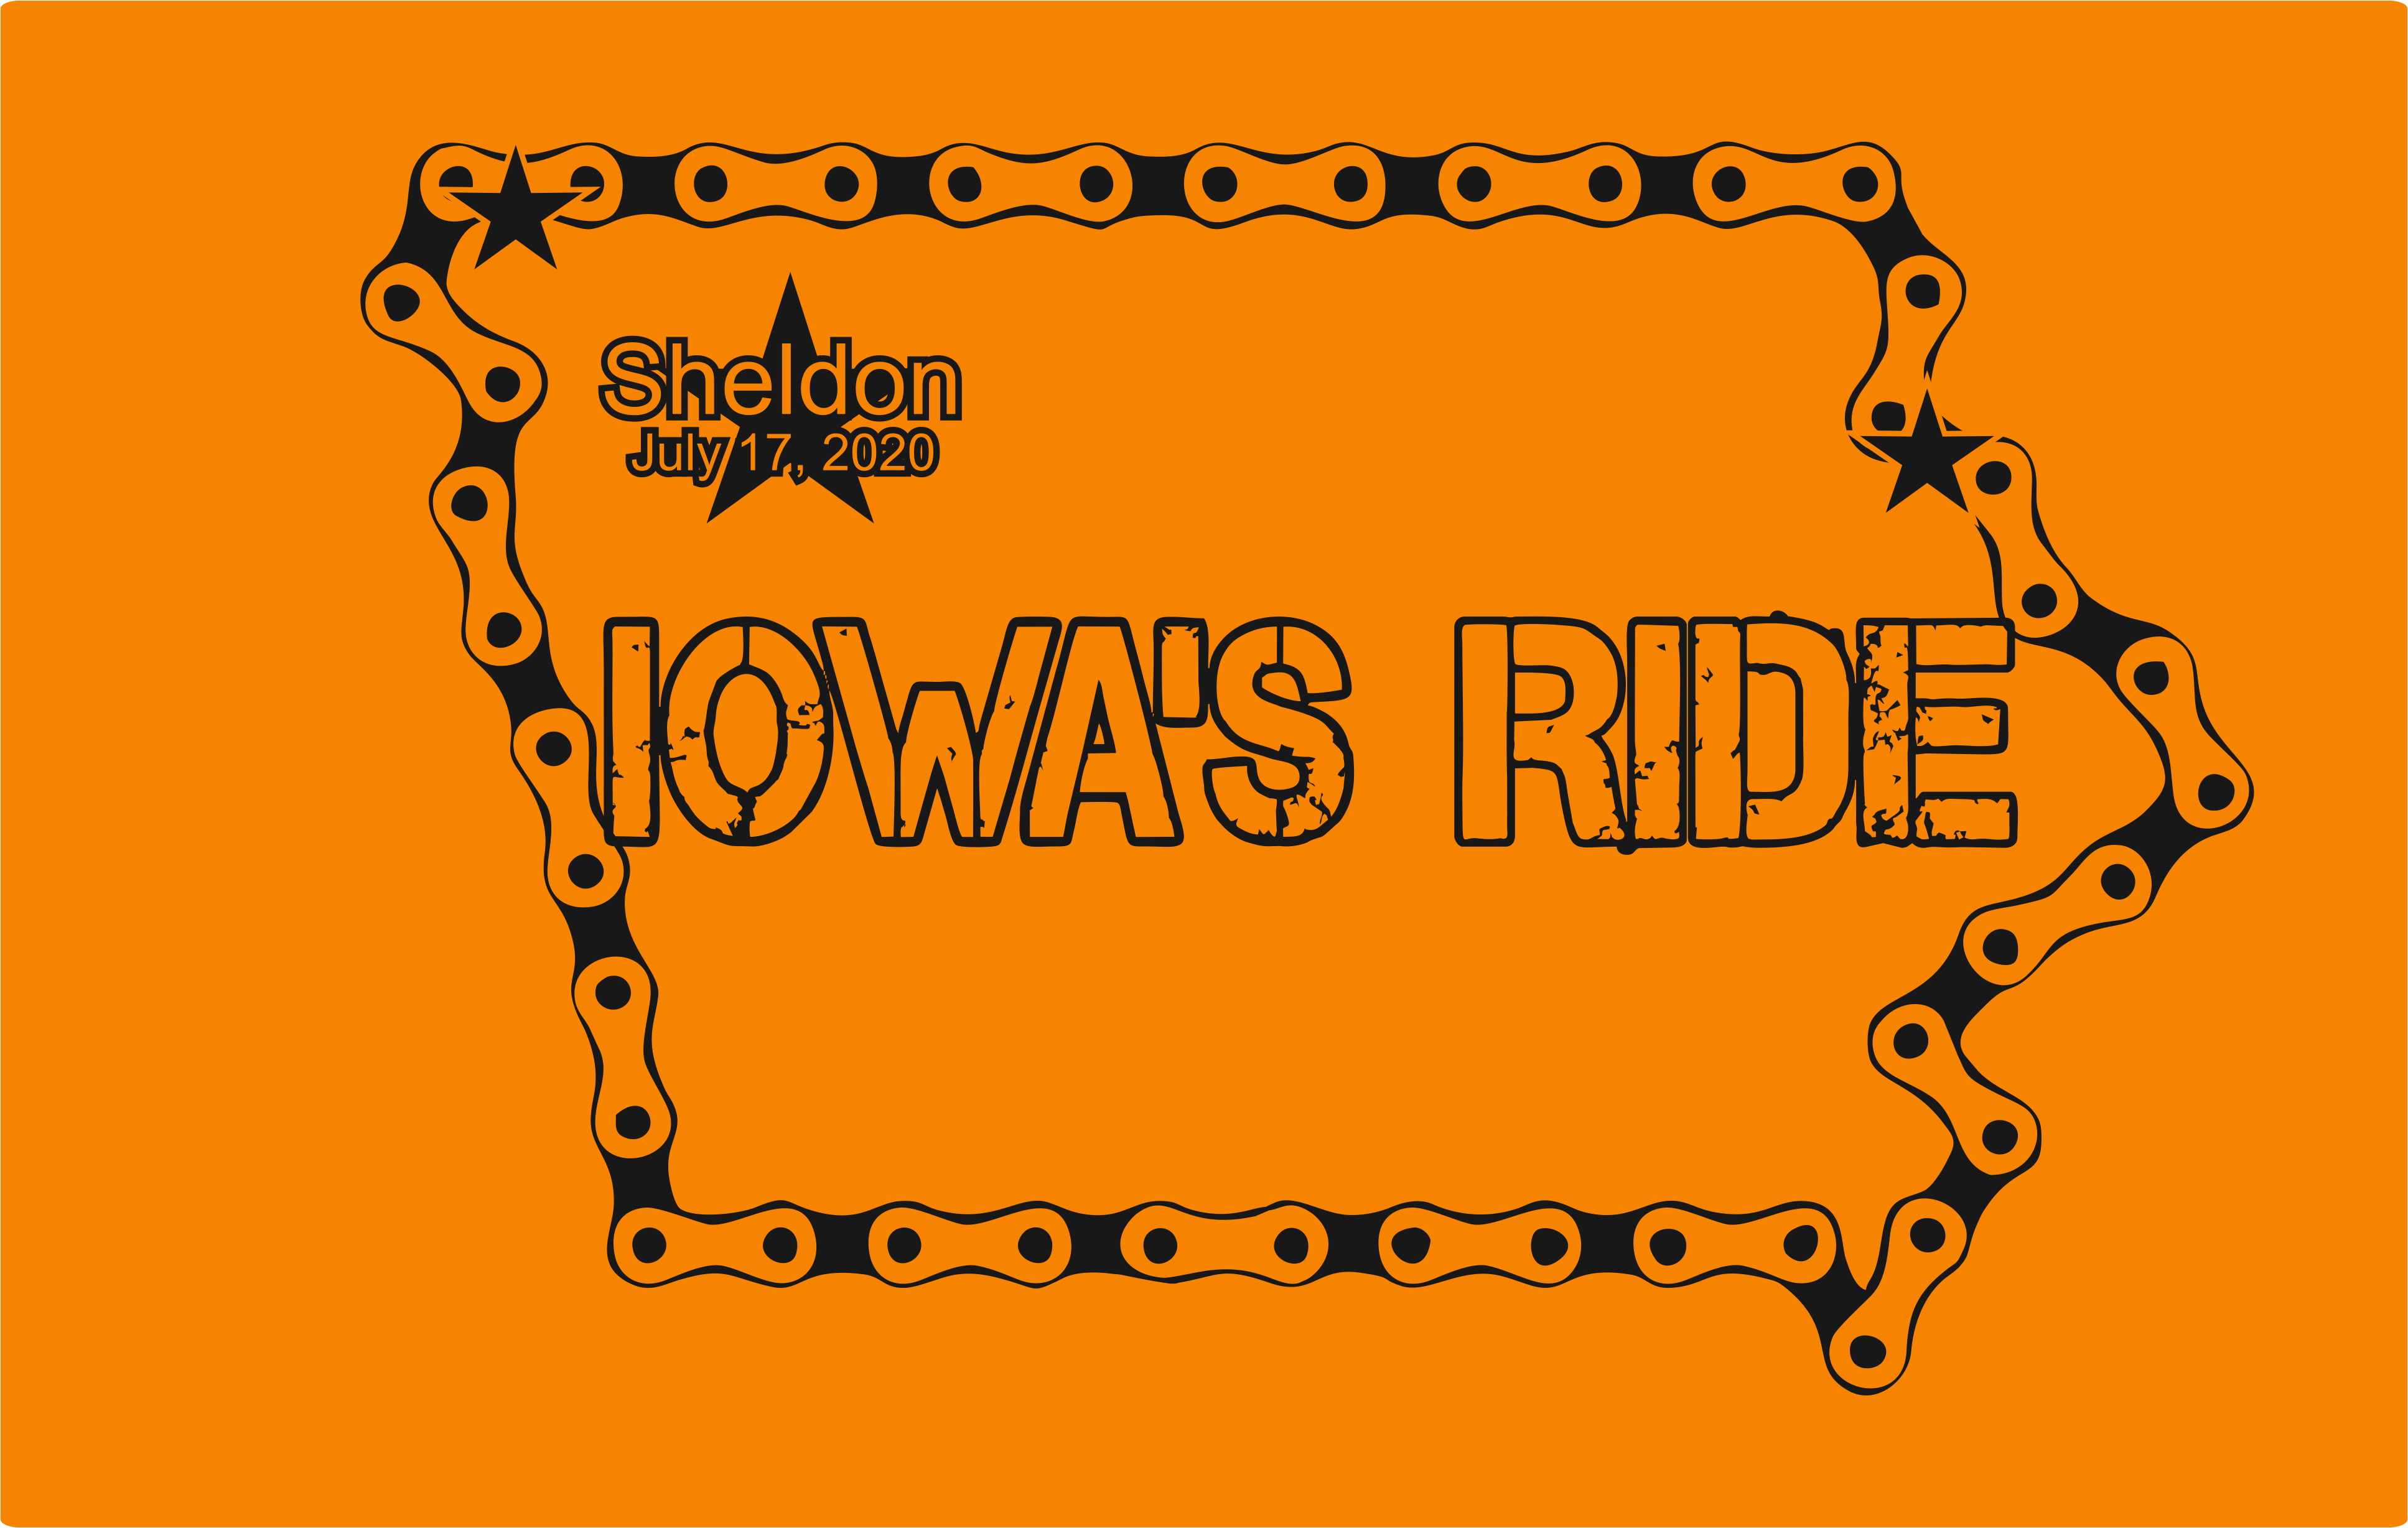 Iowa's Ride Coming to Sheldon